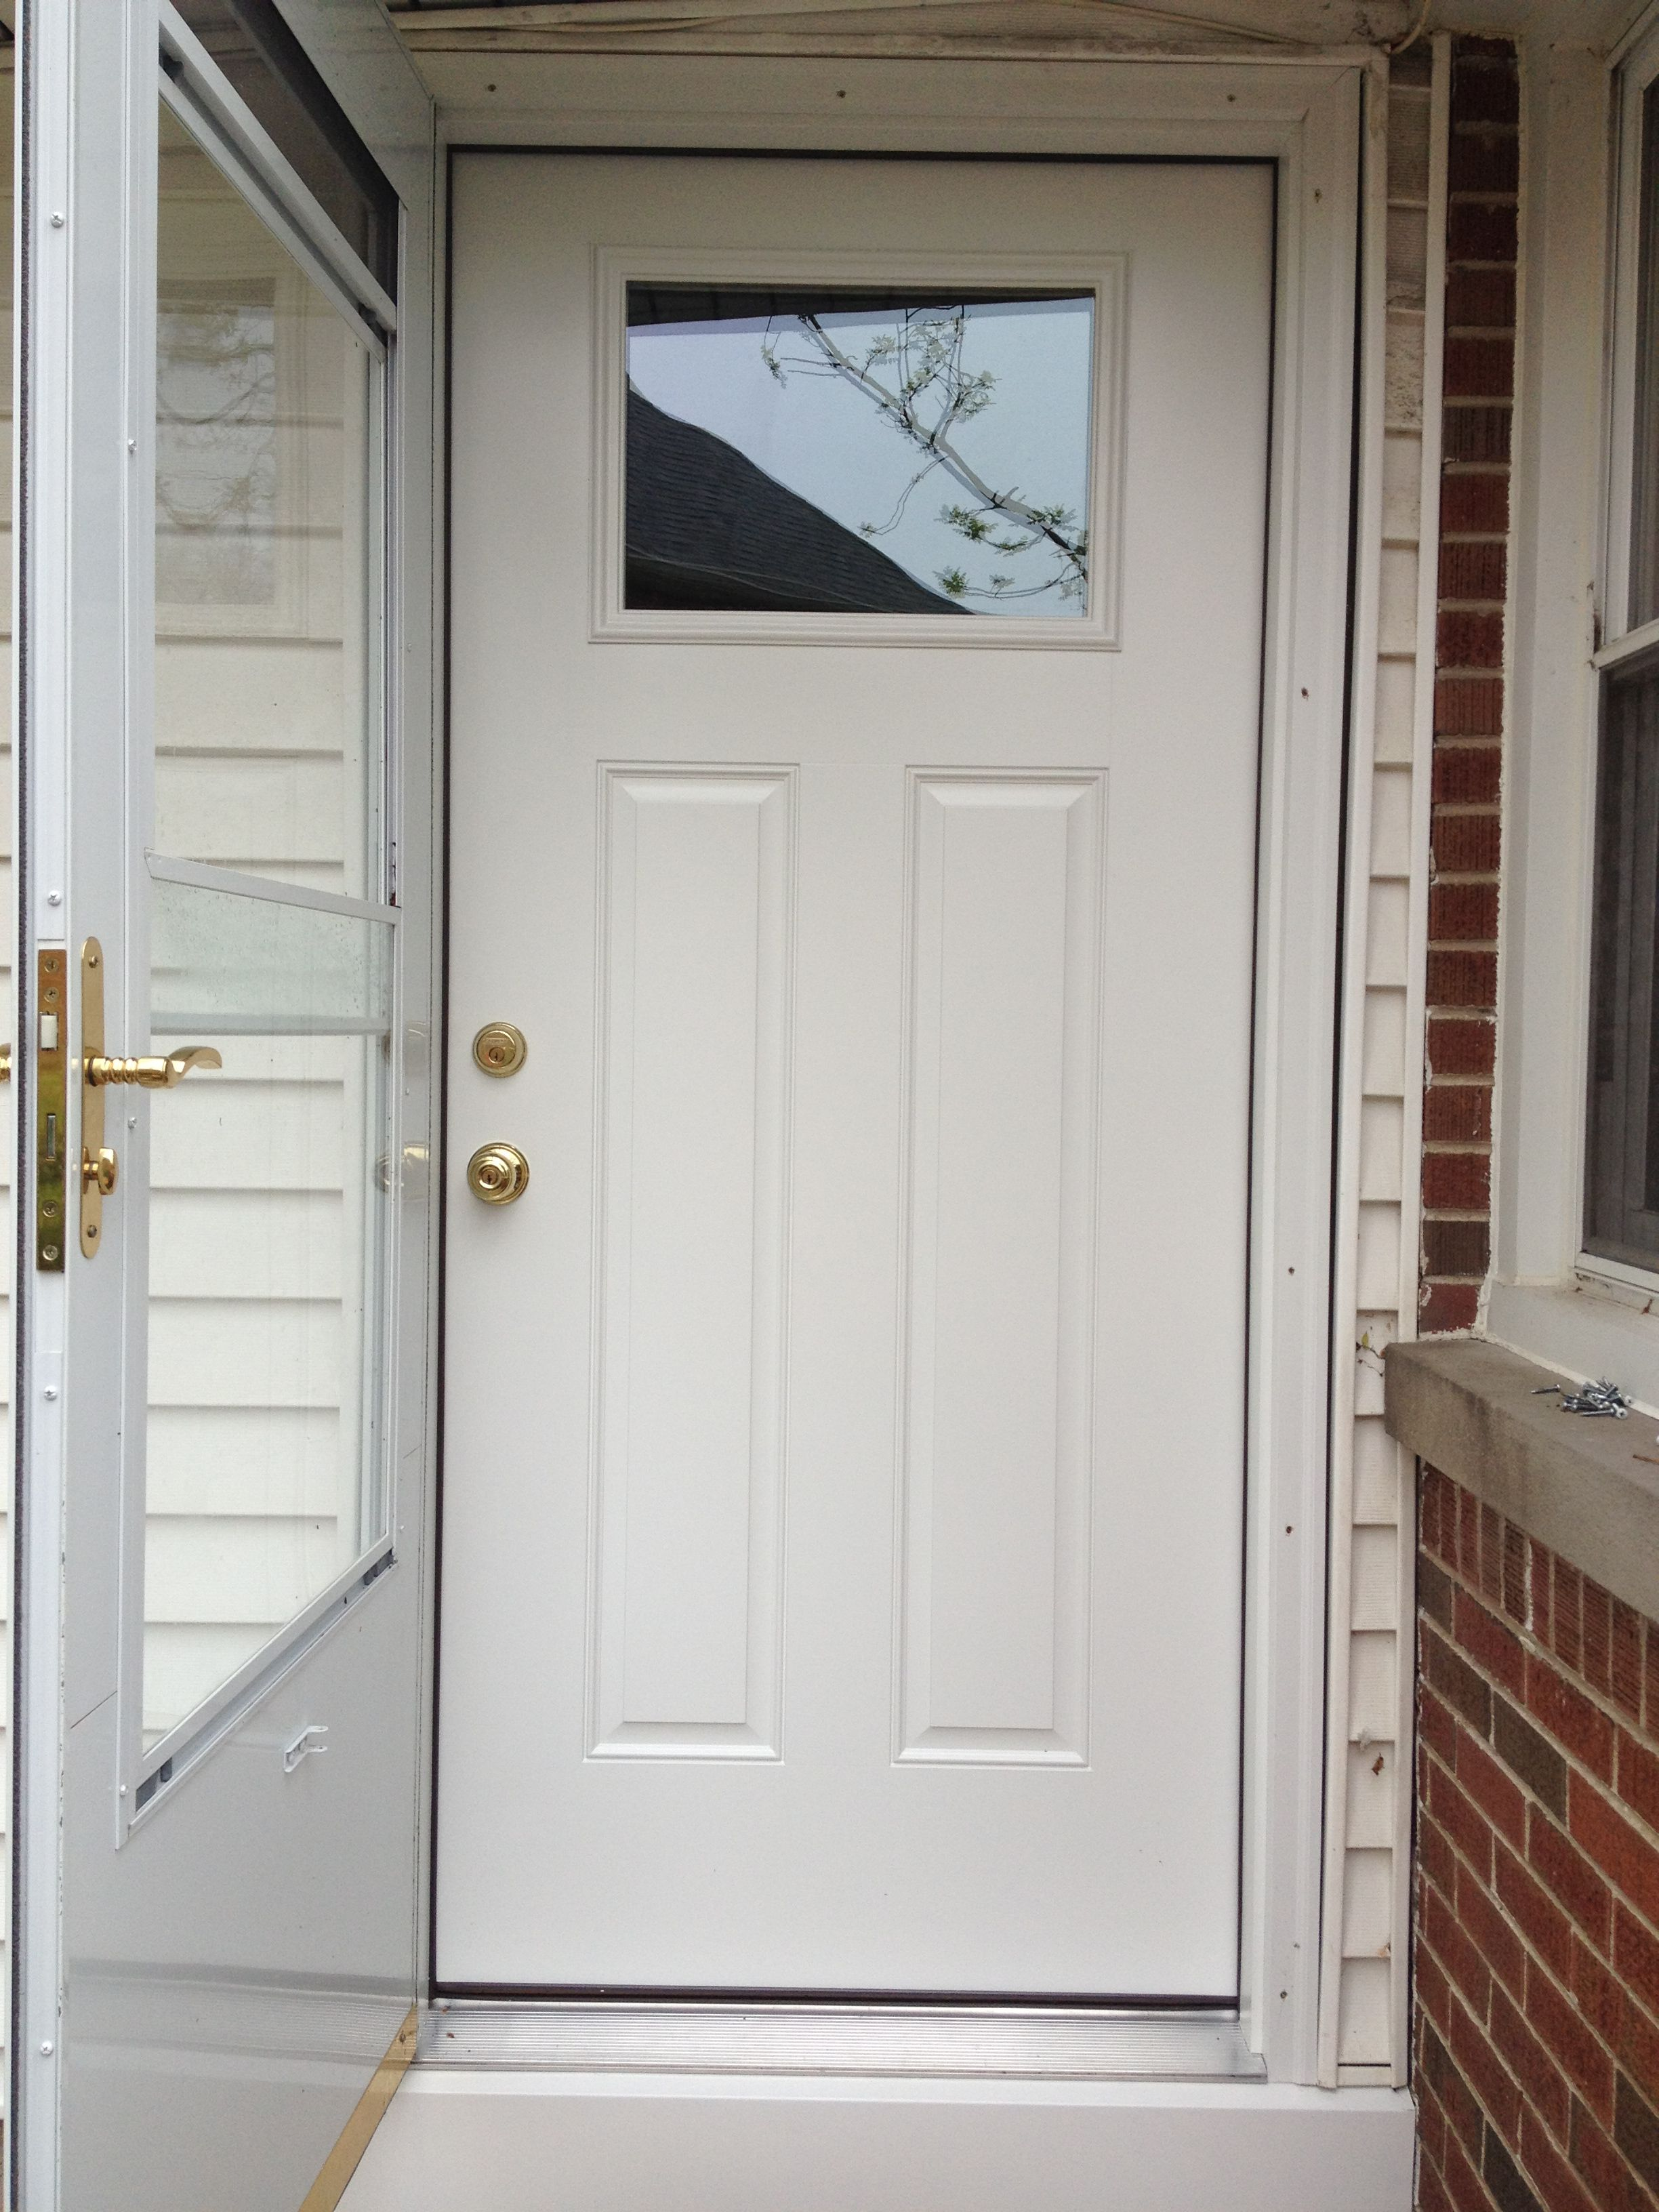 Amazing The Way It Does Look. Smooth Star, S601 Door Slab, Prefinished In Glacier  White, Bright Brass Hardware. @Toni Herman Tru Doors